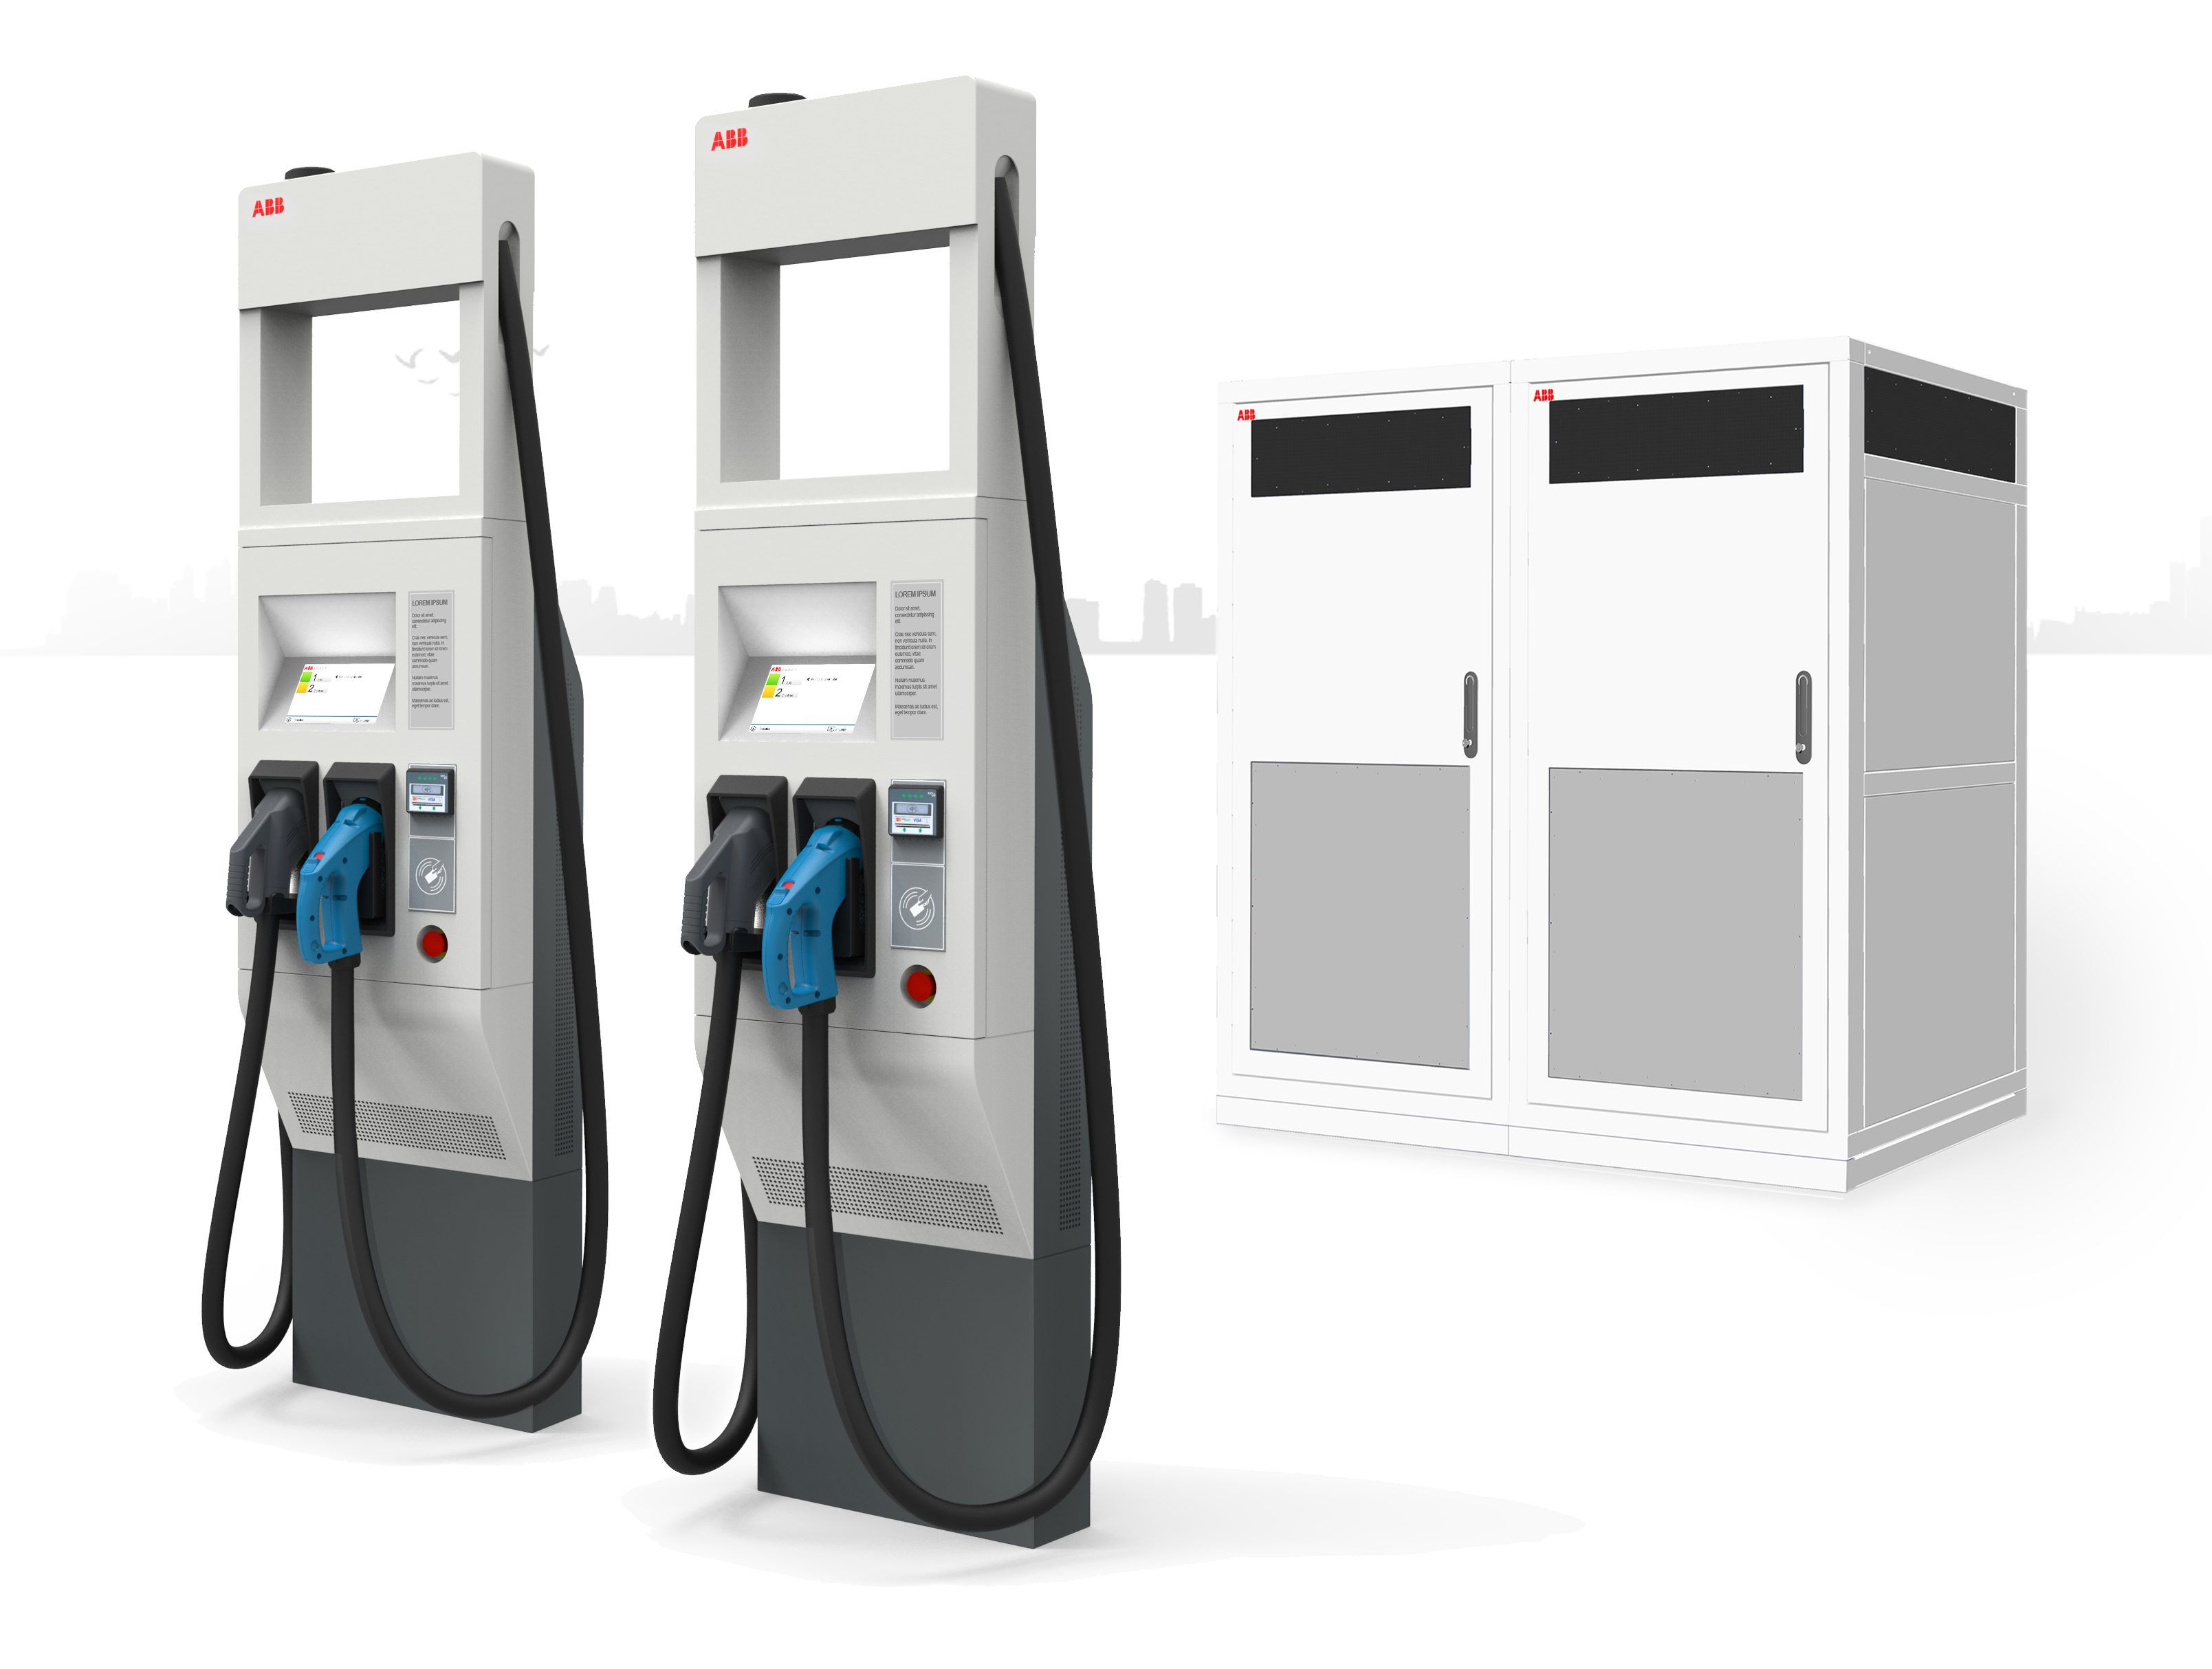 Superfast Charging For Auto Arrives New 150 350 Kw Station From Abb Hot